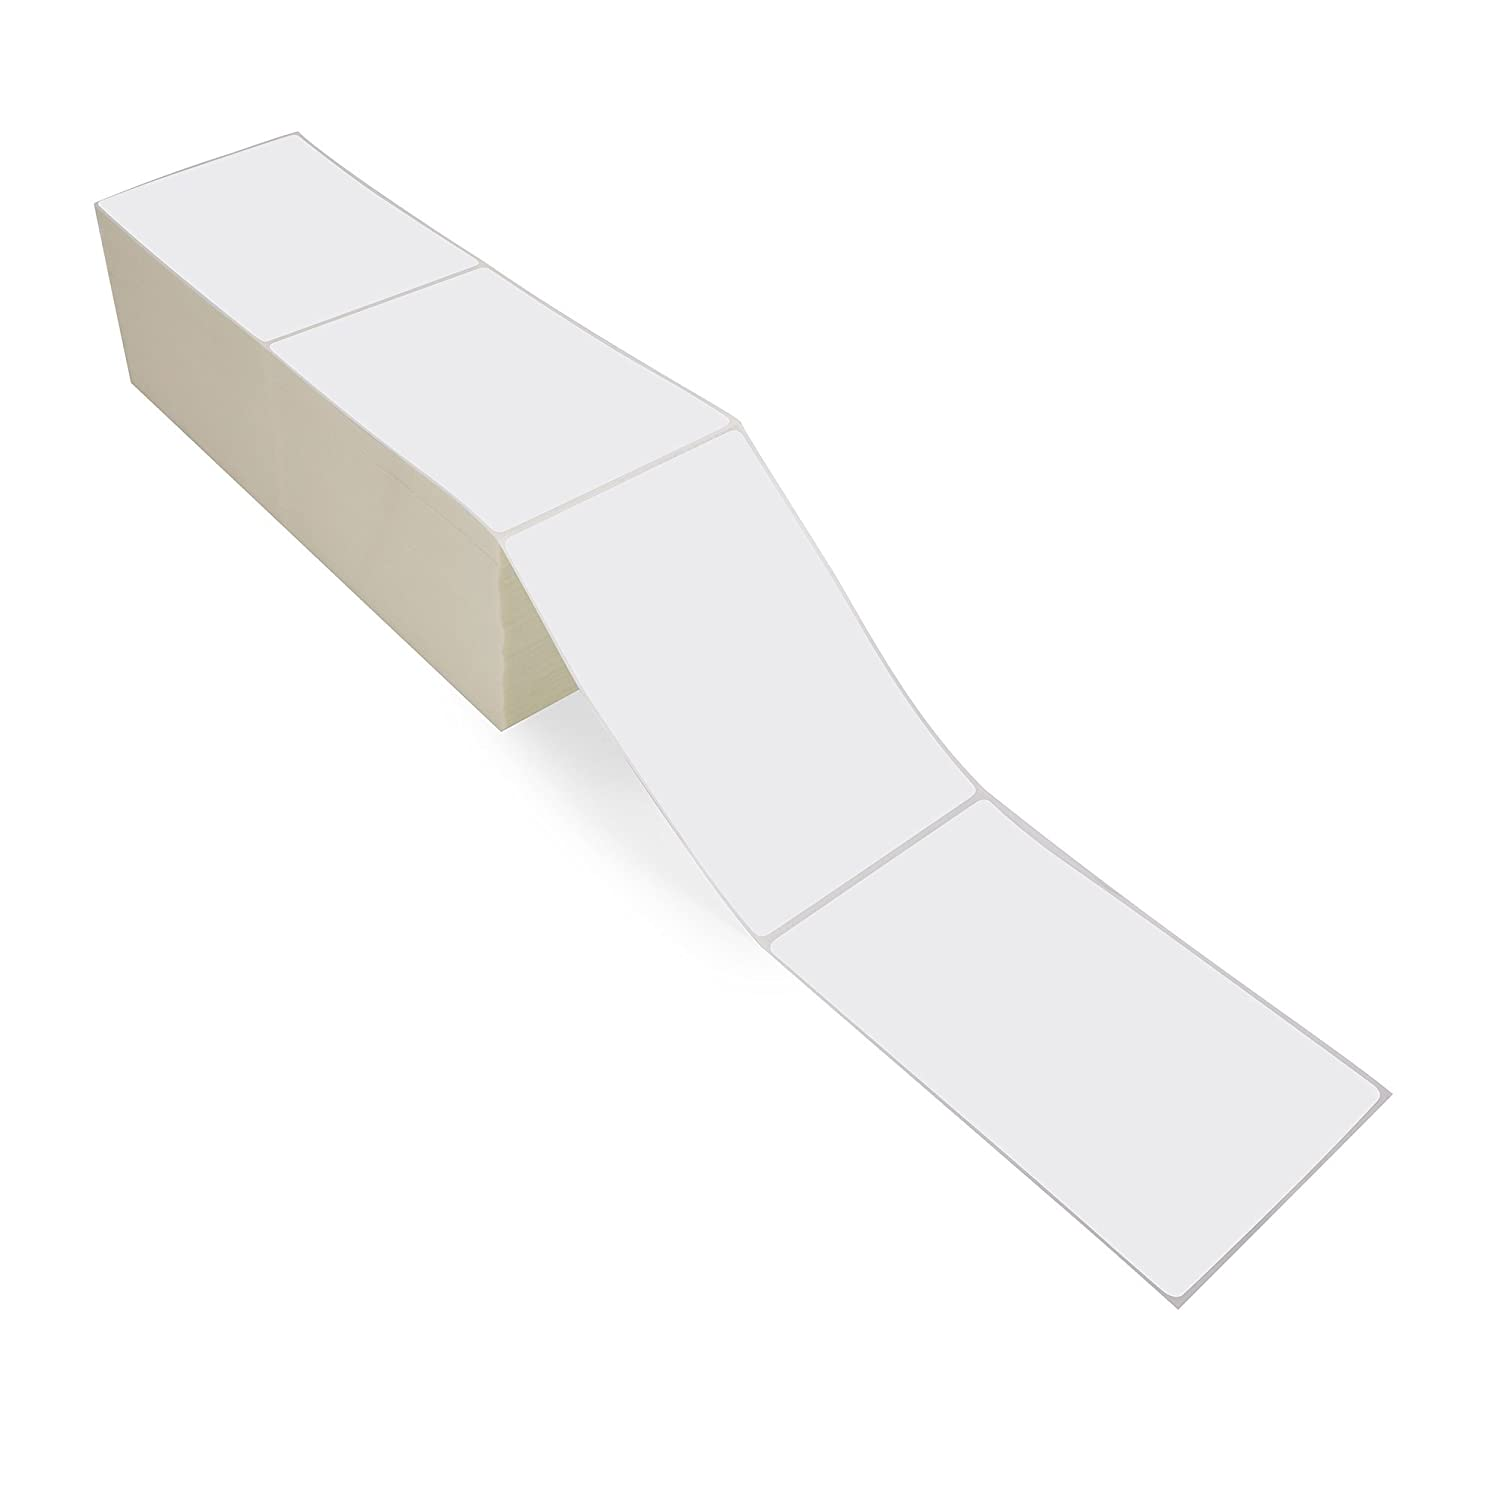 Smith Corona - 4x6 Thermal Transfer Fanfold Labels - 4000 Labels Per Box